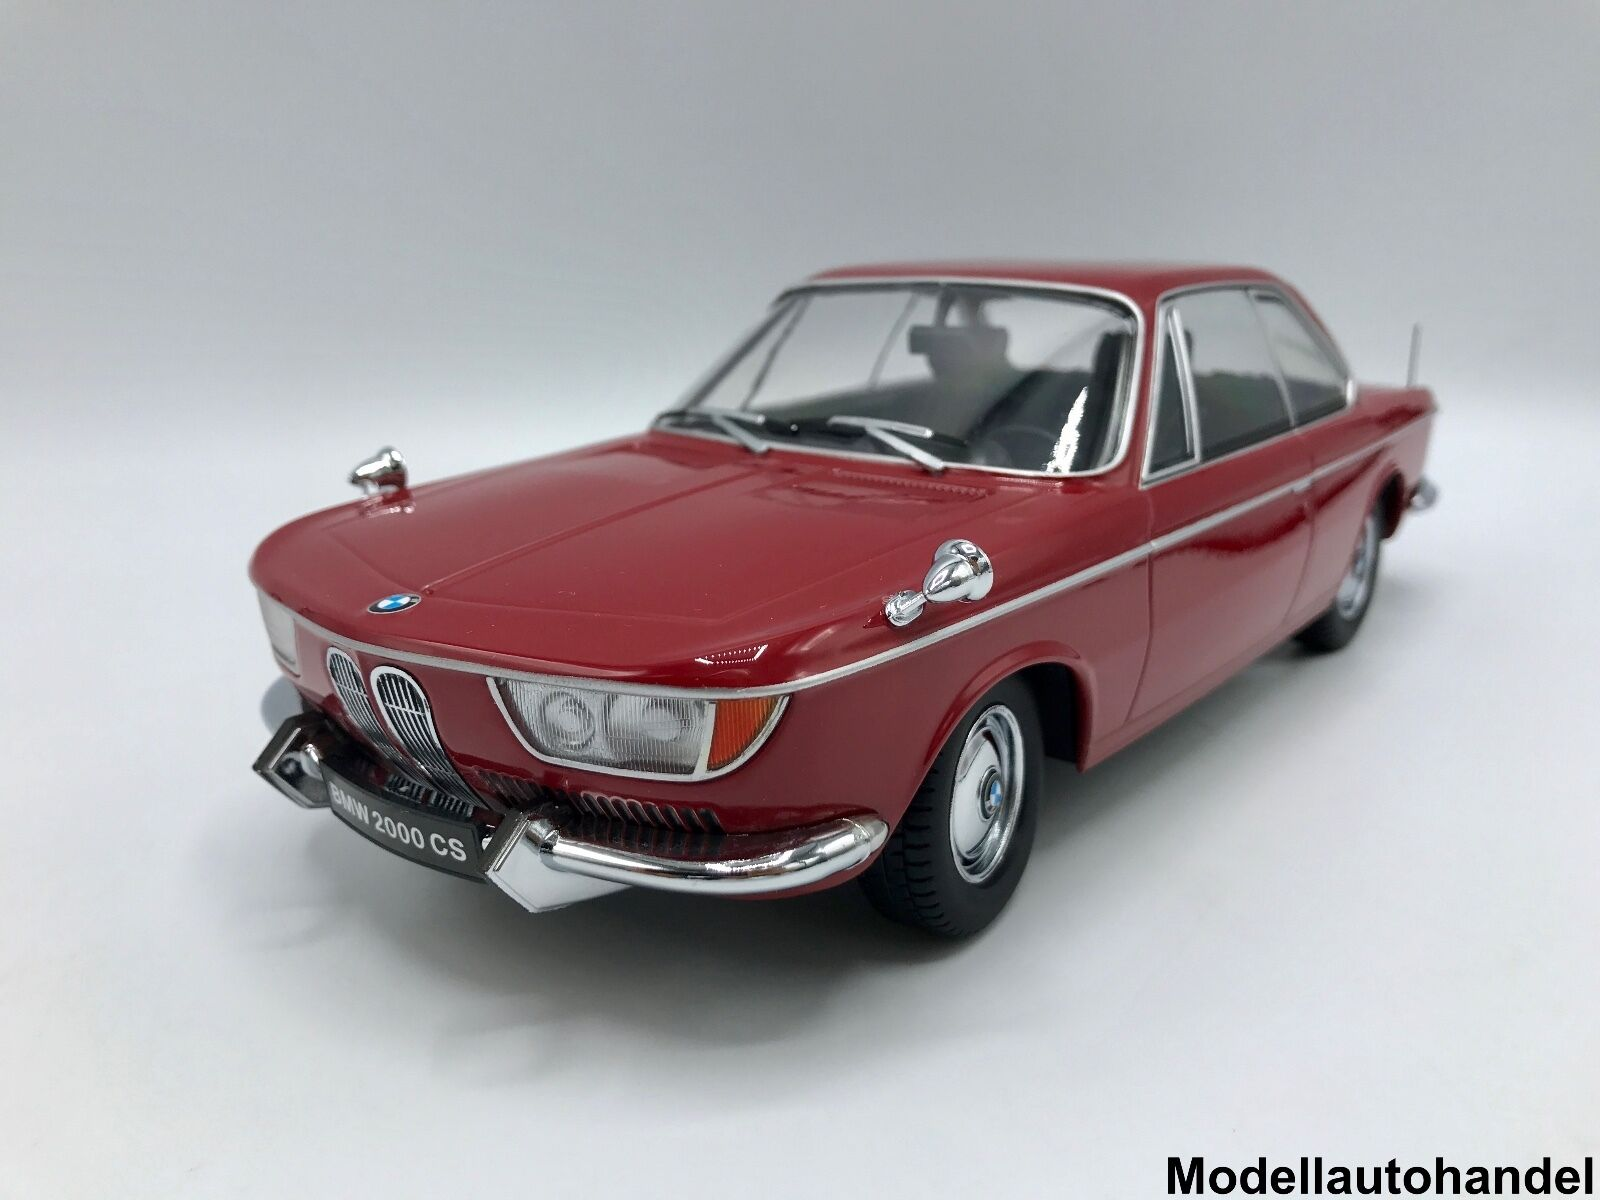 BMW 2000 CS 1965-Dark rouge - 1 18 KK-Scale     nouveau   nouveau sadie